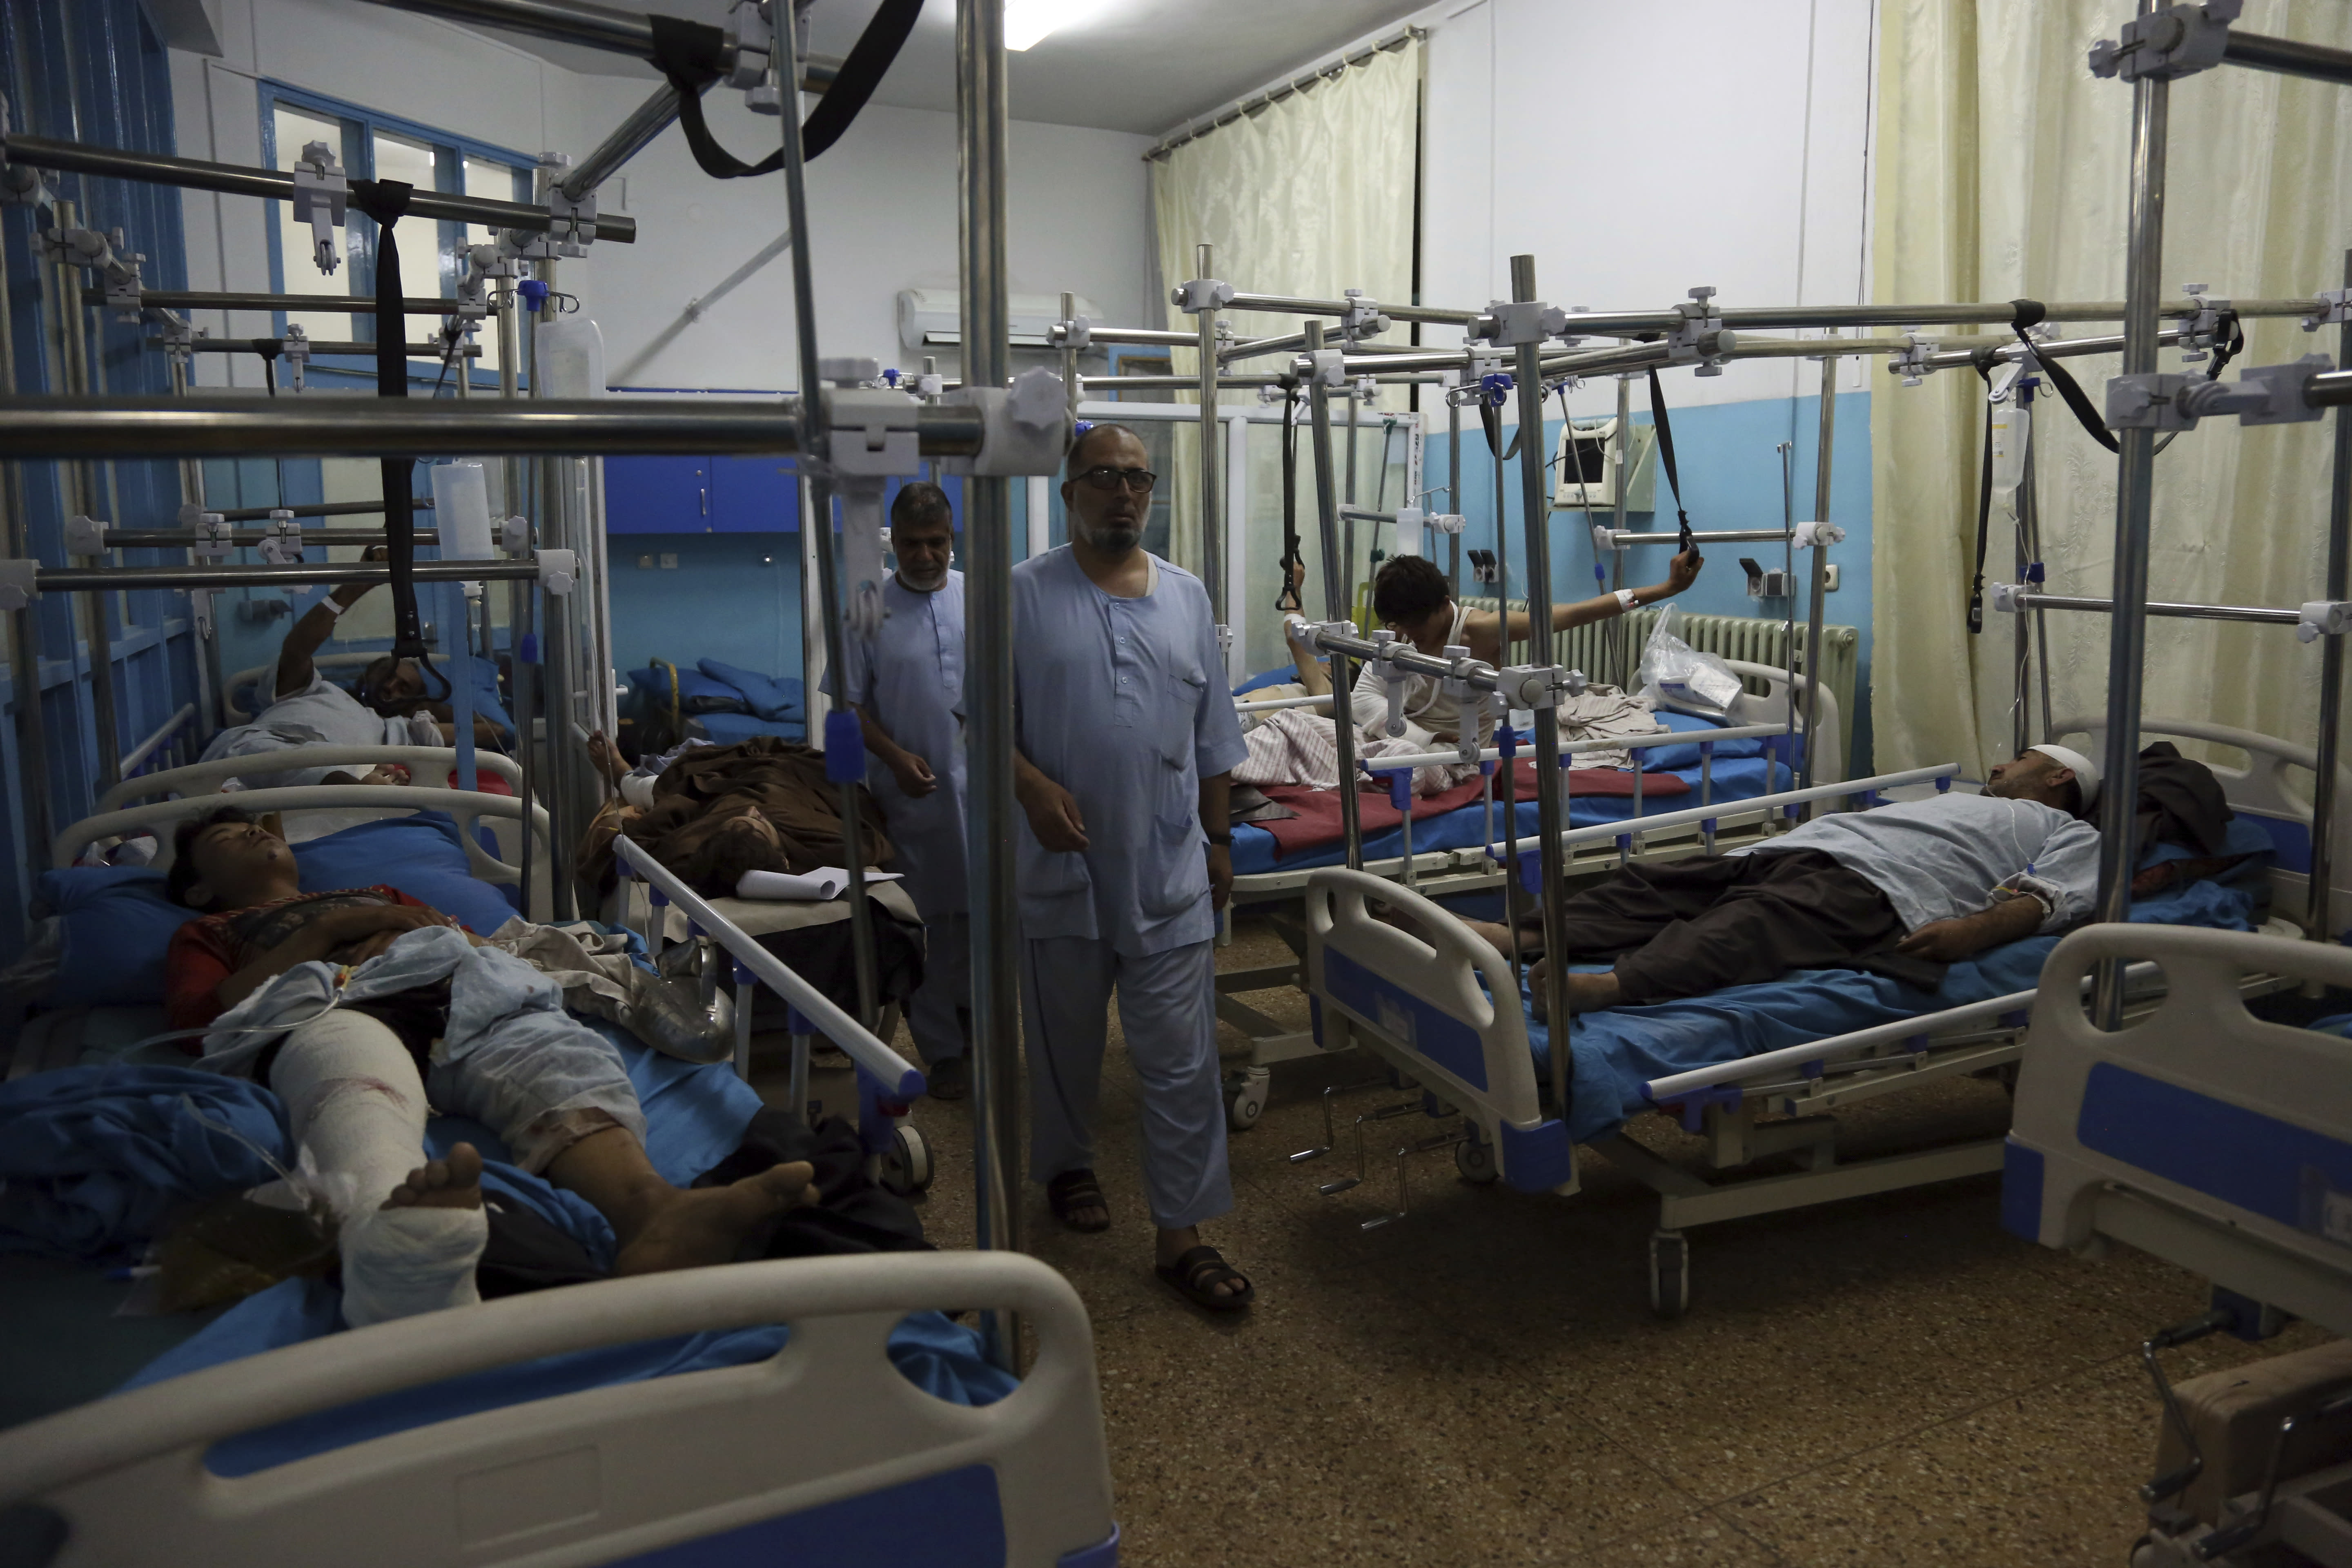 Wounded men receive treatment in a hospital after a large explosion in Kabul, Afghanistan, Monday, Sept. 2, 2019. The Taliban claimed responsibility for a large explosion in the Afghan capital Monday night, which government officials said targeted an area home to several international organizations and guesthouses. (AP Photo/Rahmat Gul)